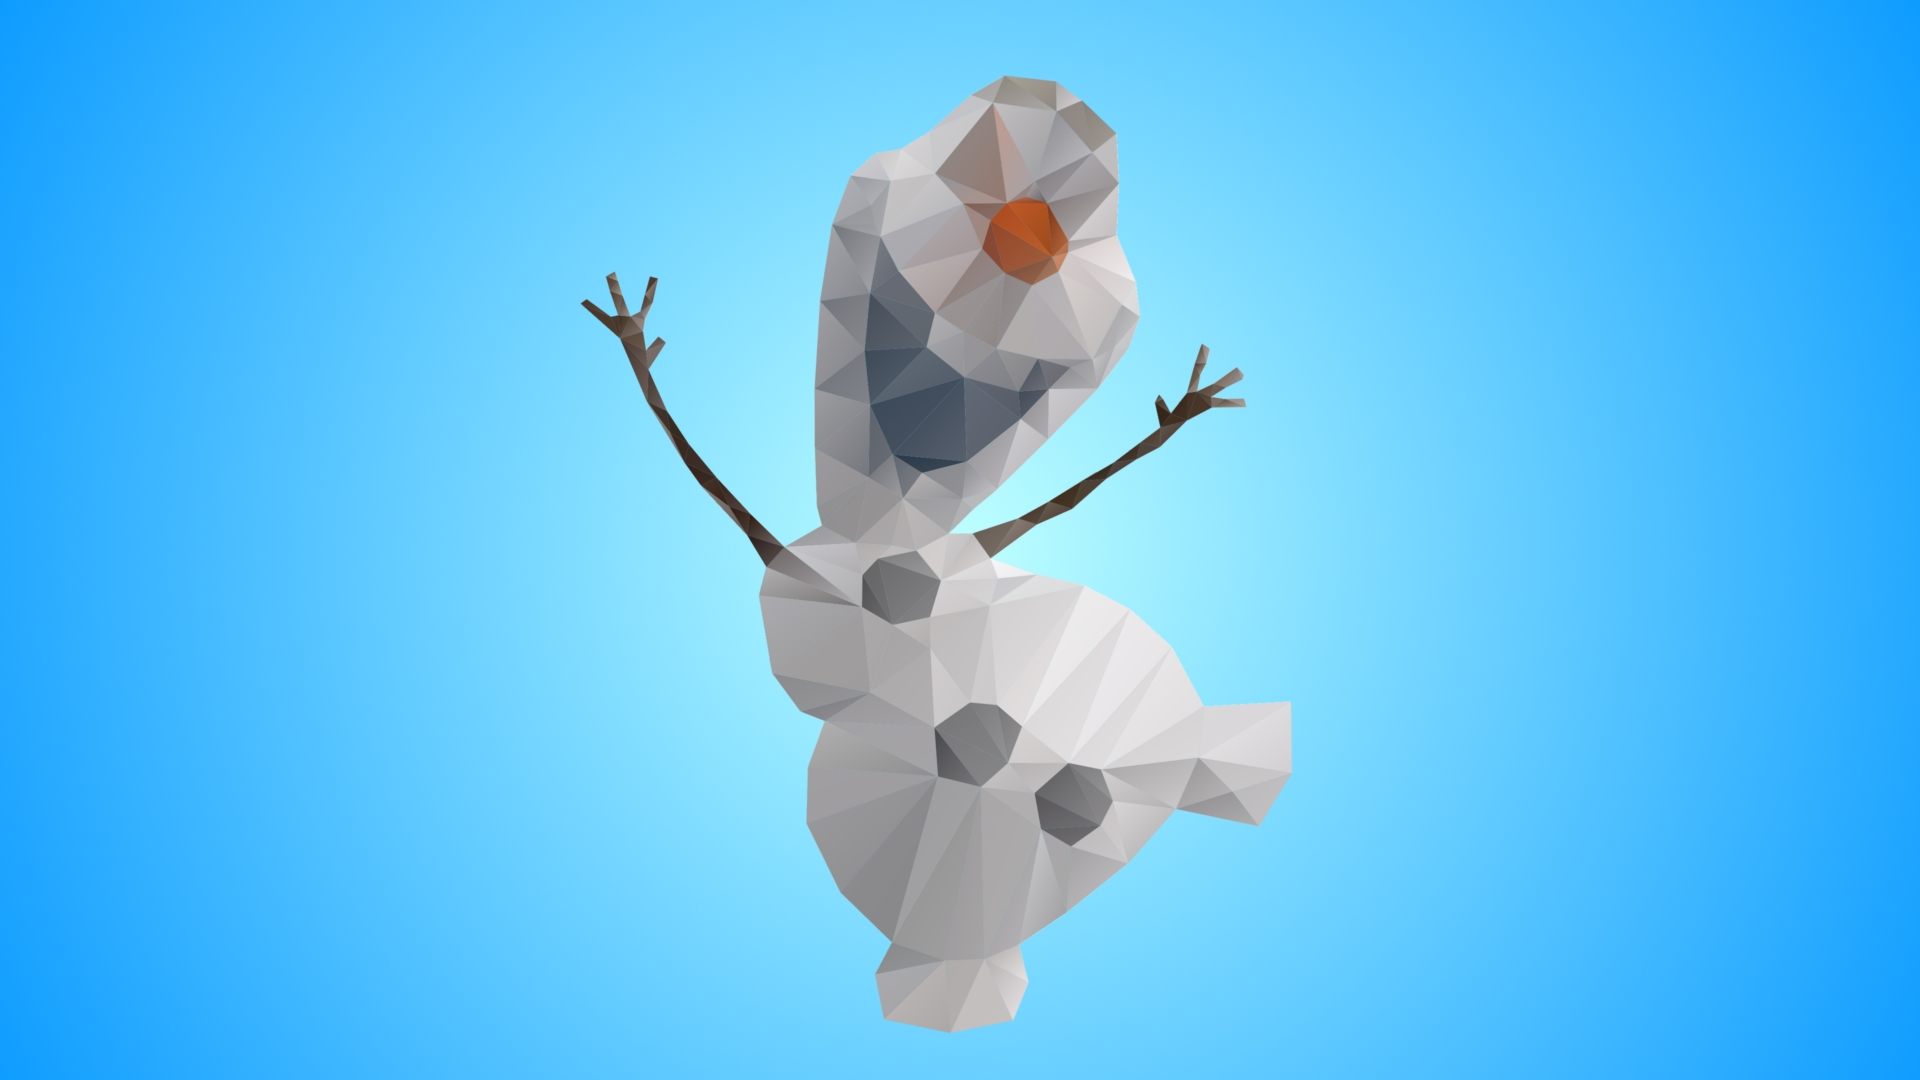 Cute Olaf Wallpapers 1920x1080